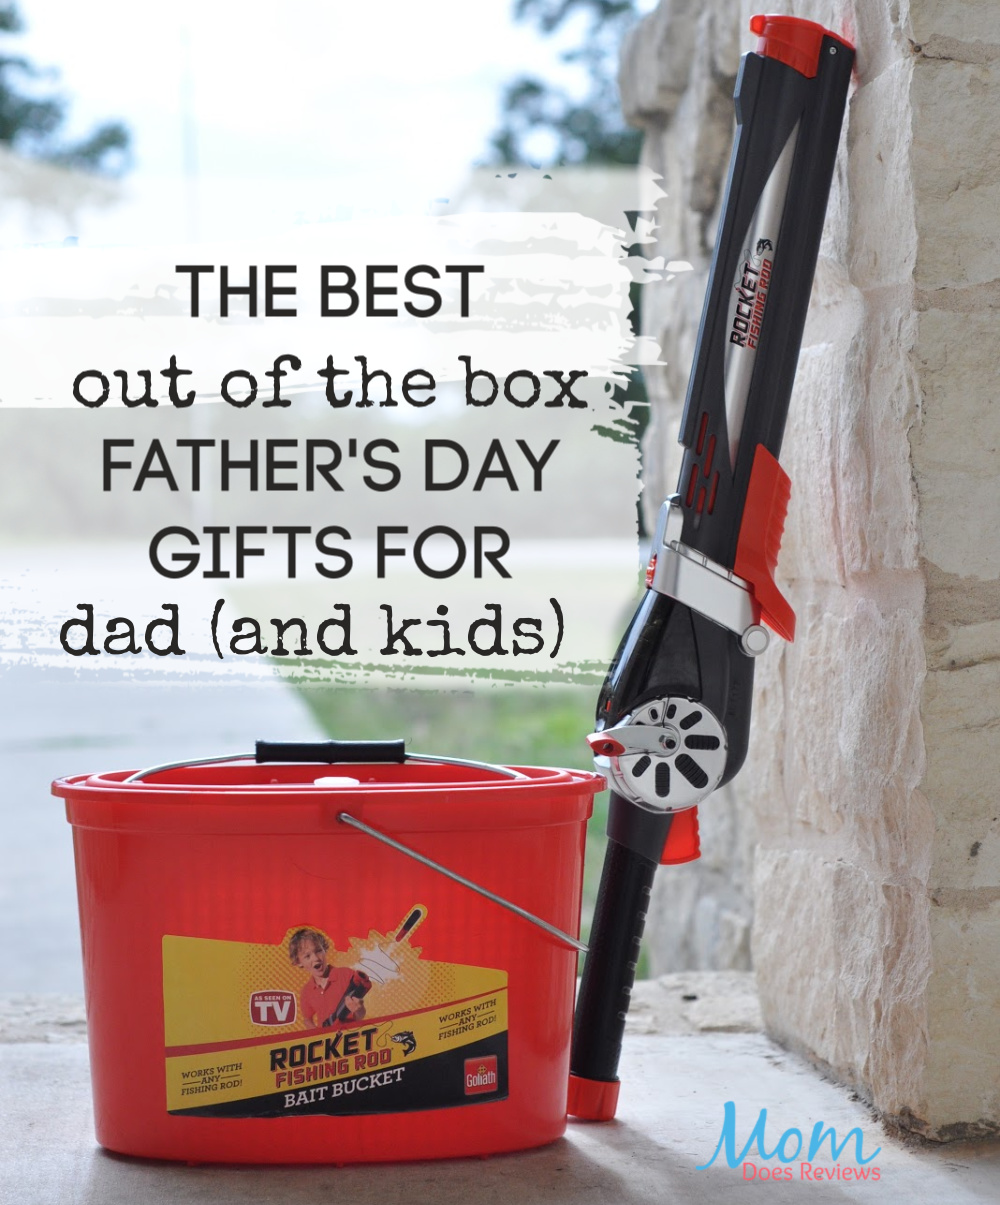 The best out of the box Father's Day gifts for dad (and kids)